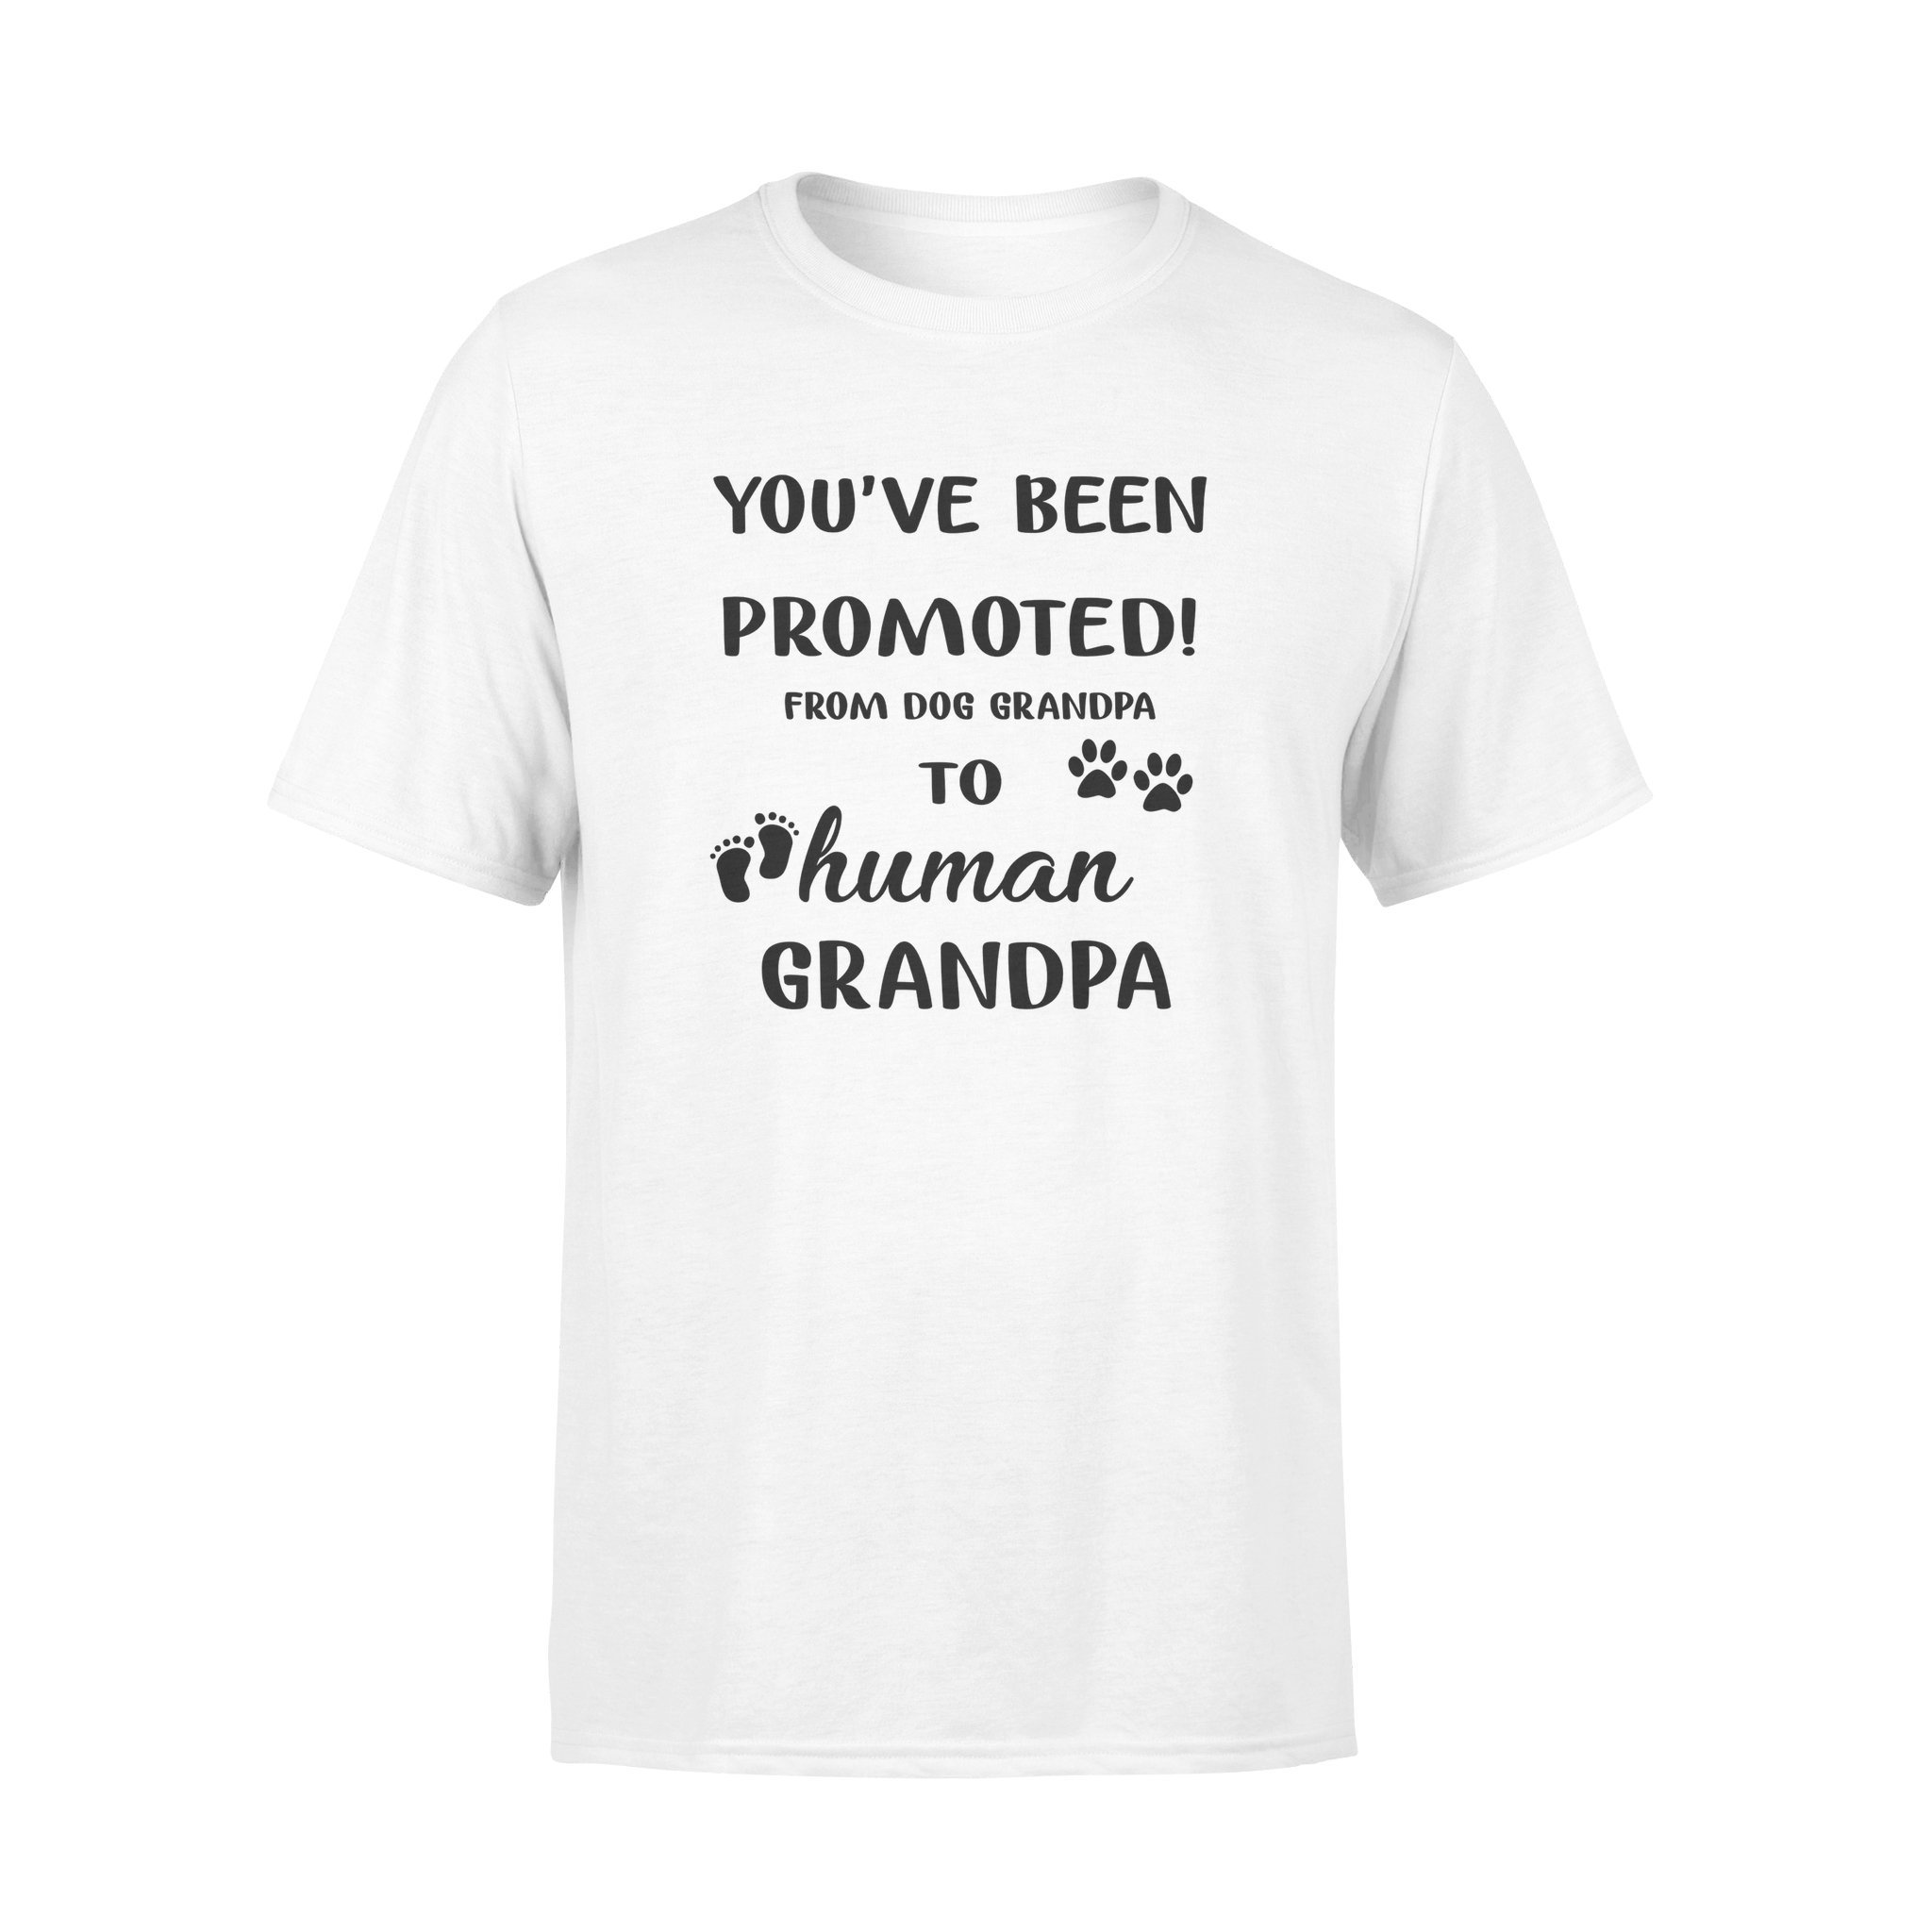 Promoted grandpa shirt - gifts for dog lovers - Standard T-shirt